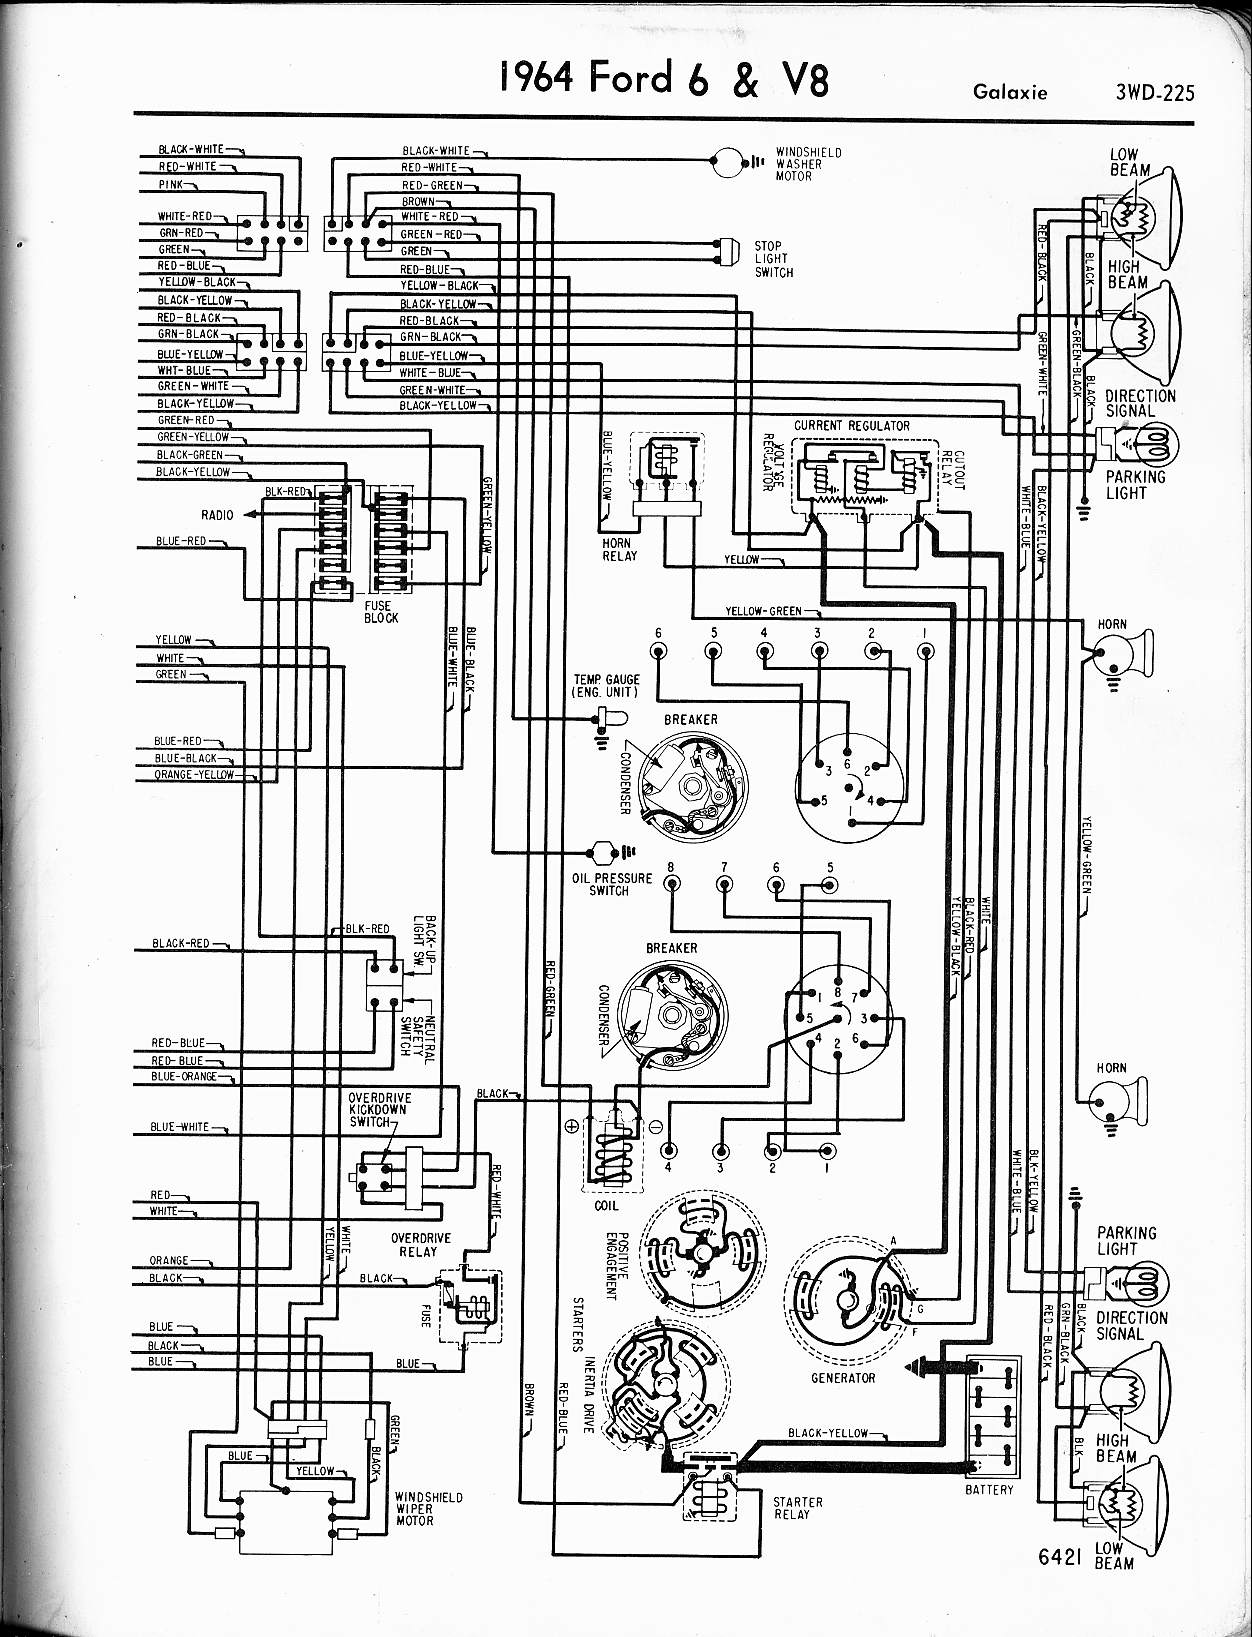 MWire5765 225 57 65 ford wiring diagrams ford car wiring diagrams at panicattacktreatment.co